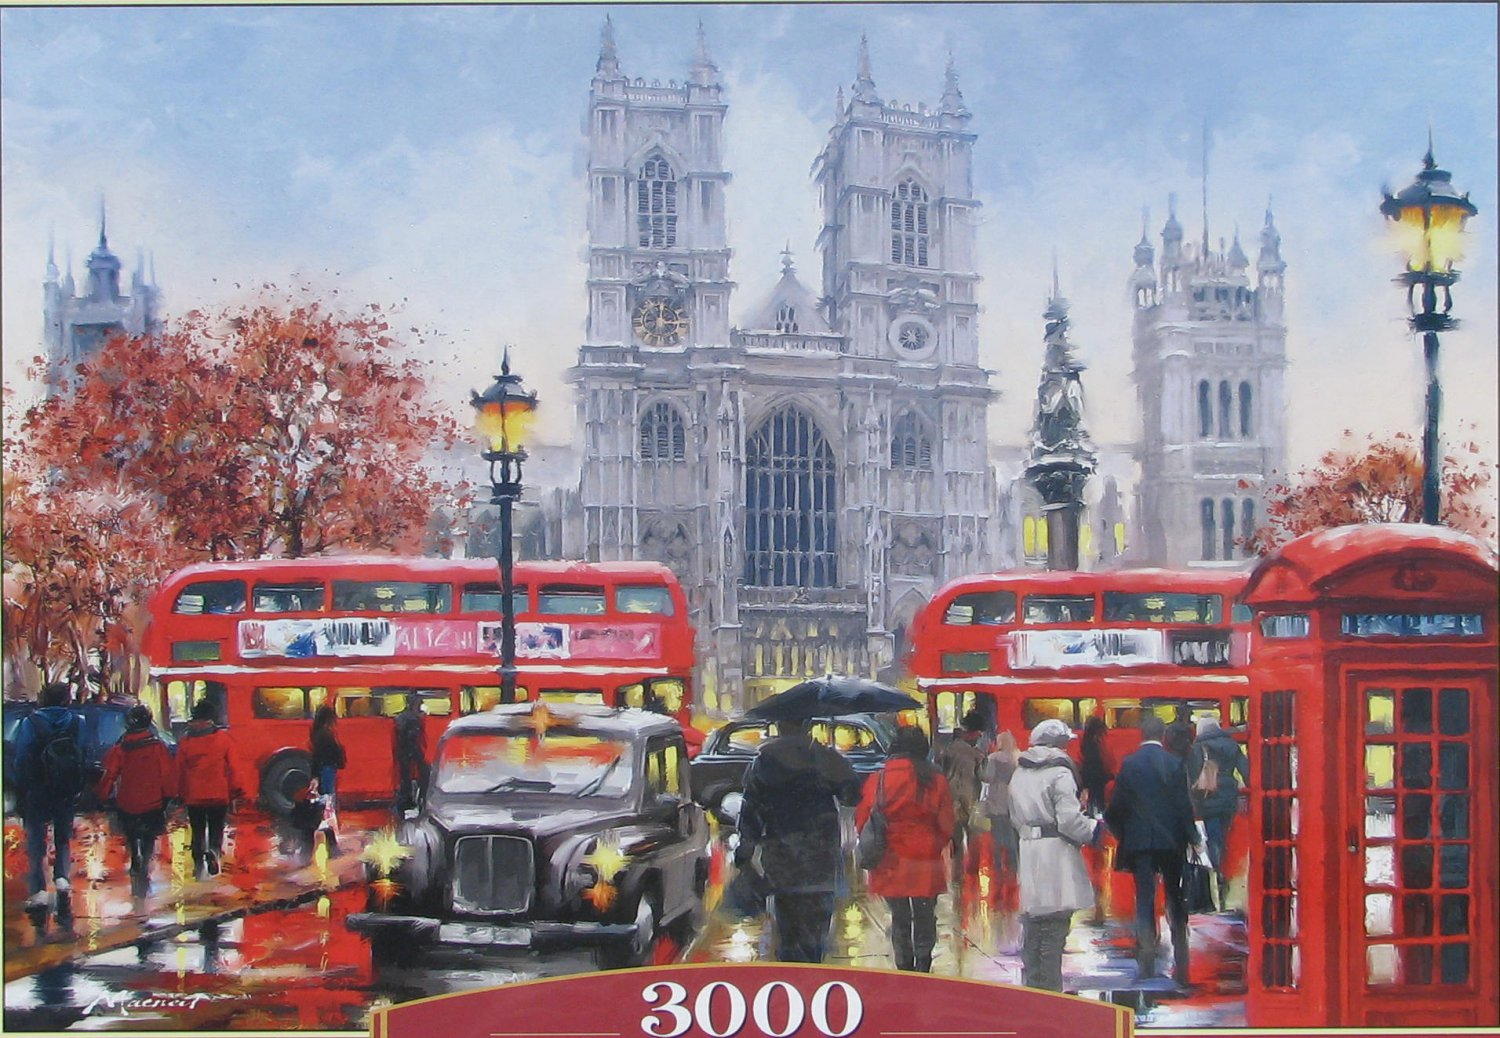 Castorland WESTMINSTER ABBEY 3000 pc Jigsaw Puzzle New